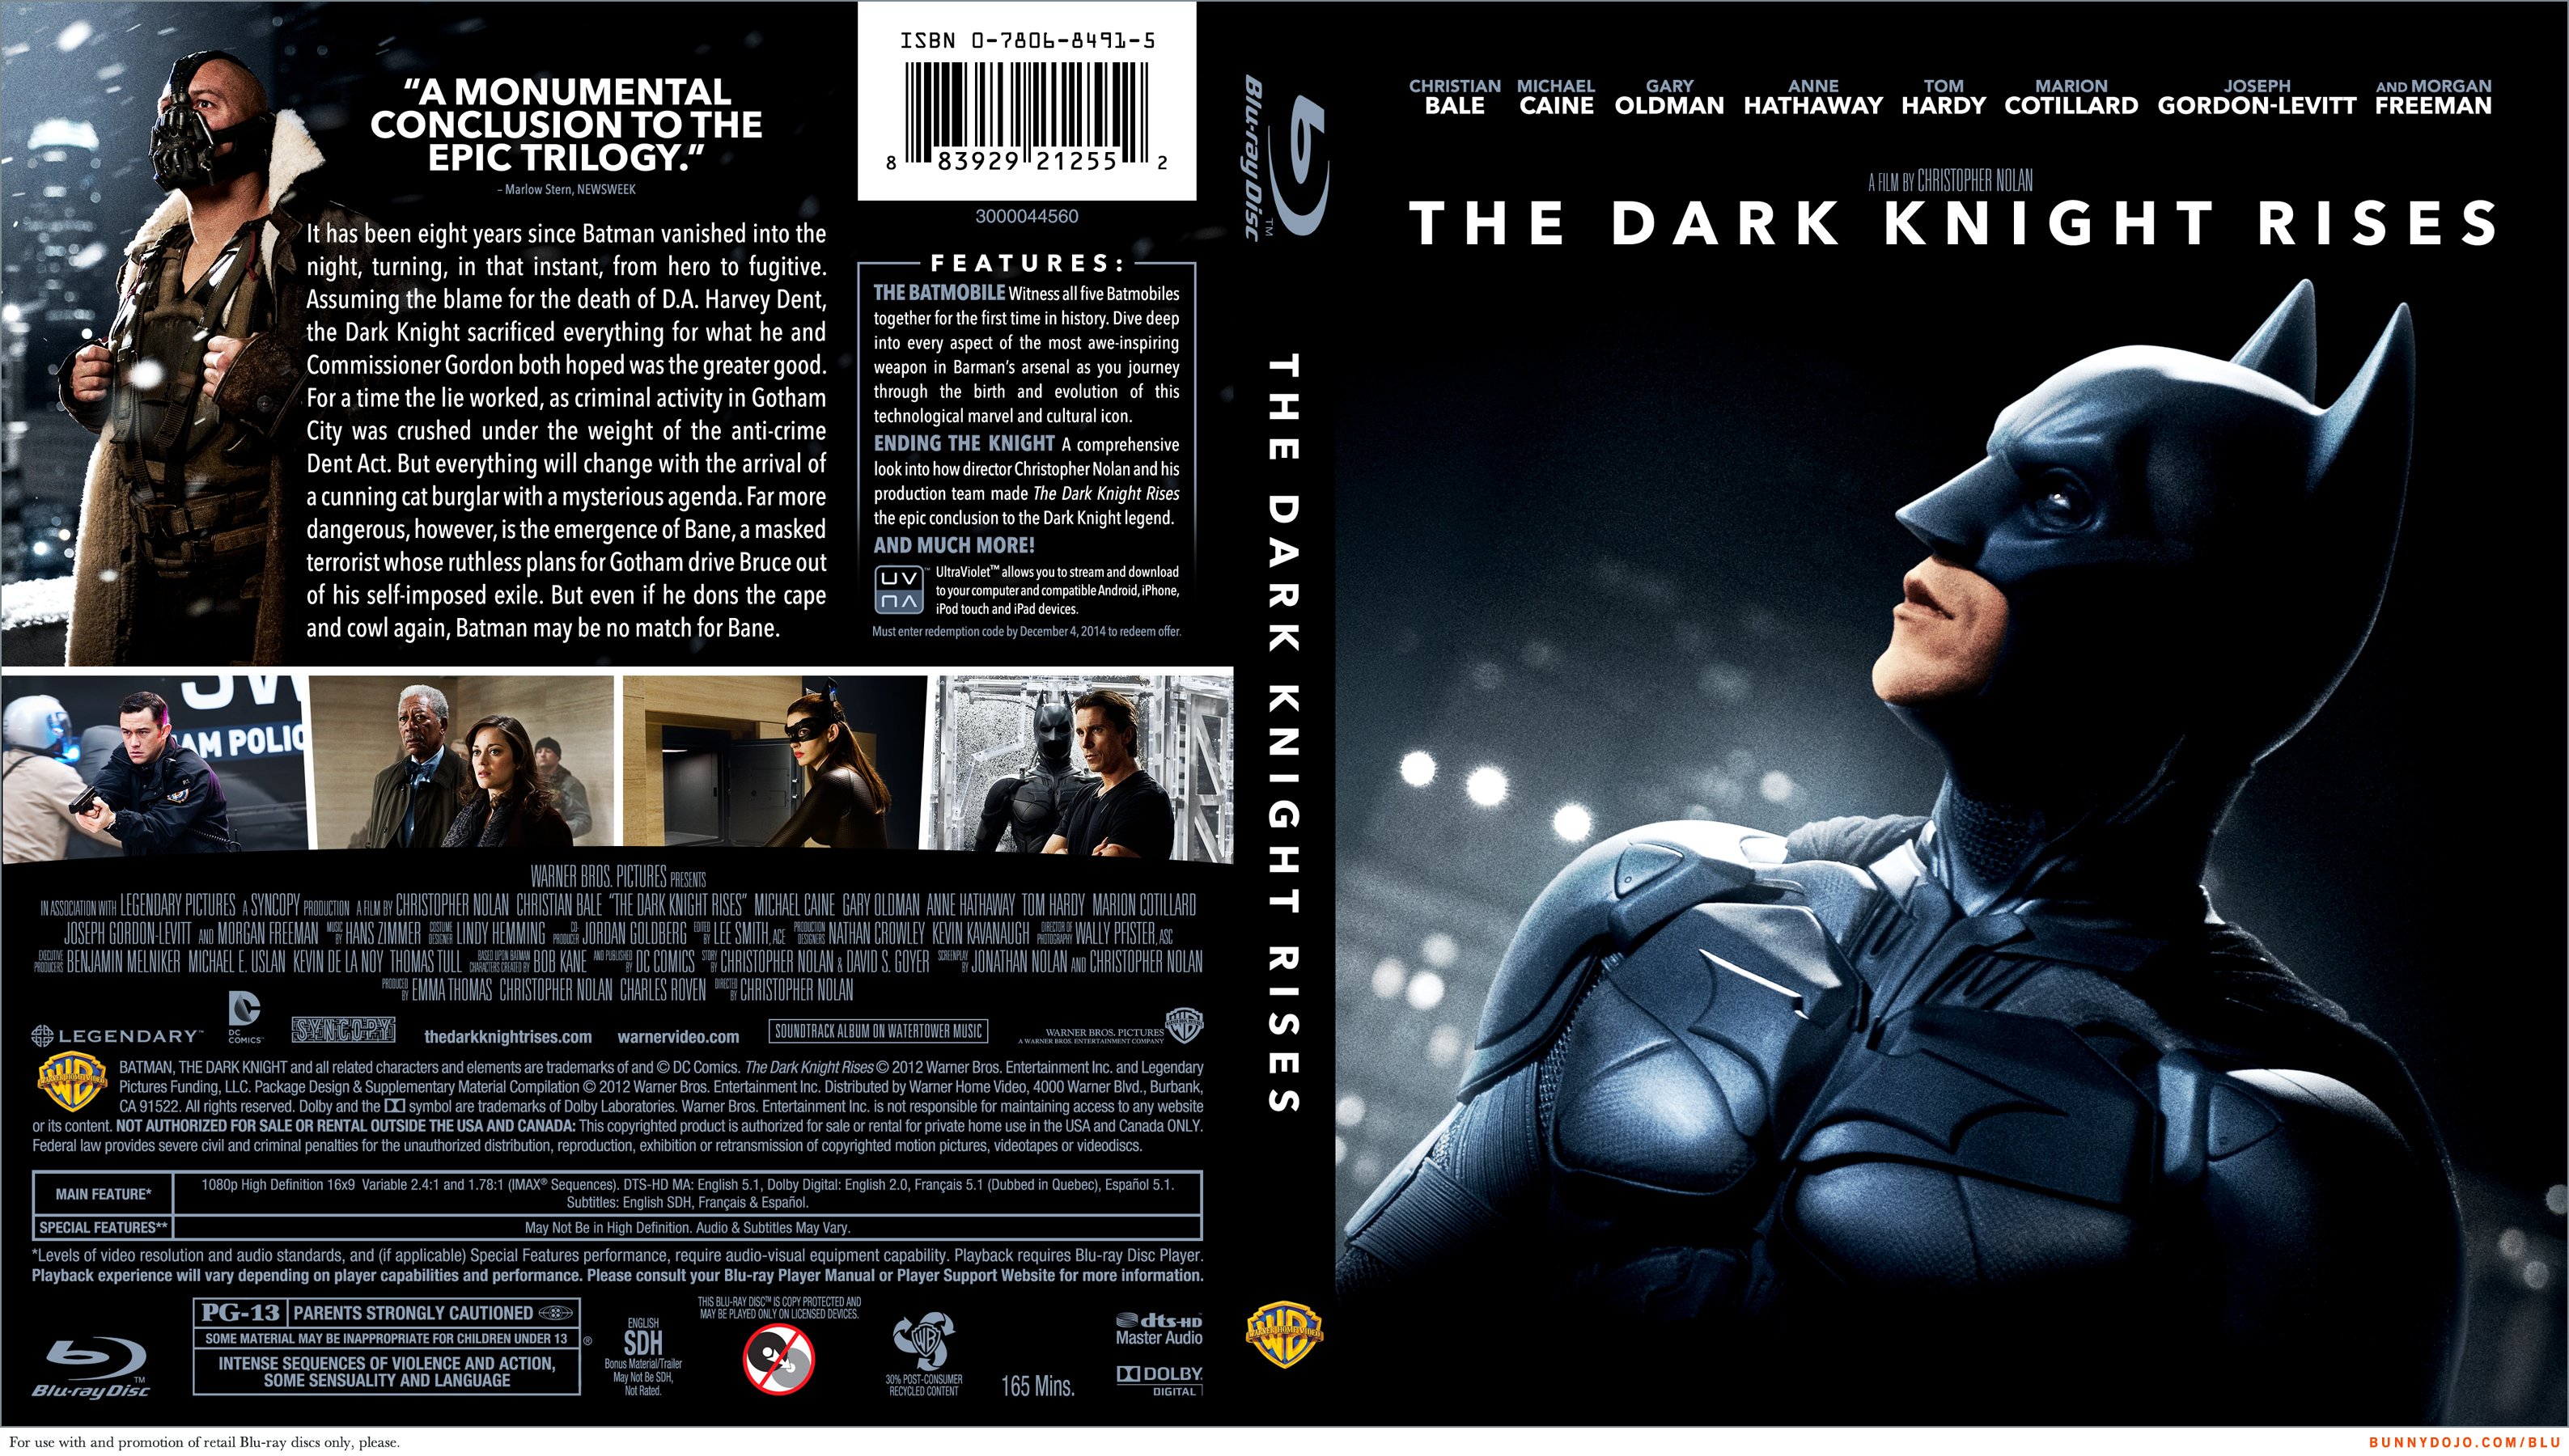 dark knight hero journey Product description batman the dark knight rises movie masters collector figures: based on the hit new batman film, the dark knight rises the dark knight rises comes to life with movie masters figures, sculpted with superior accuracy and details inspired by the film.